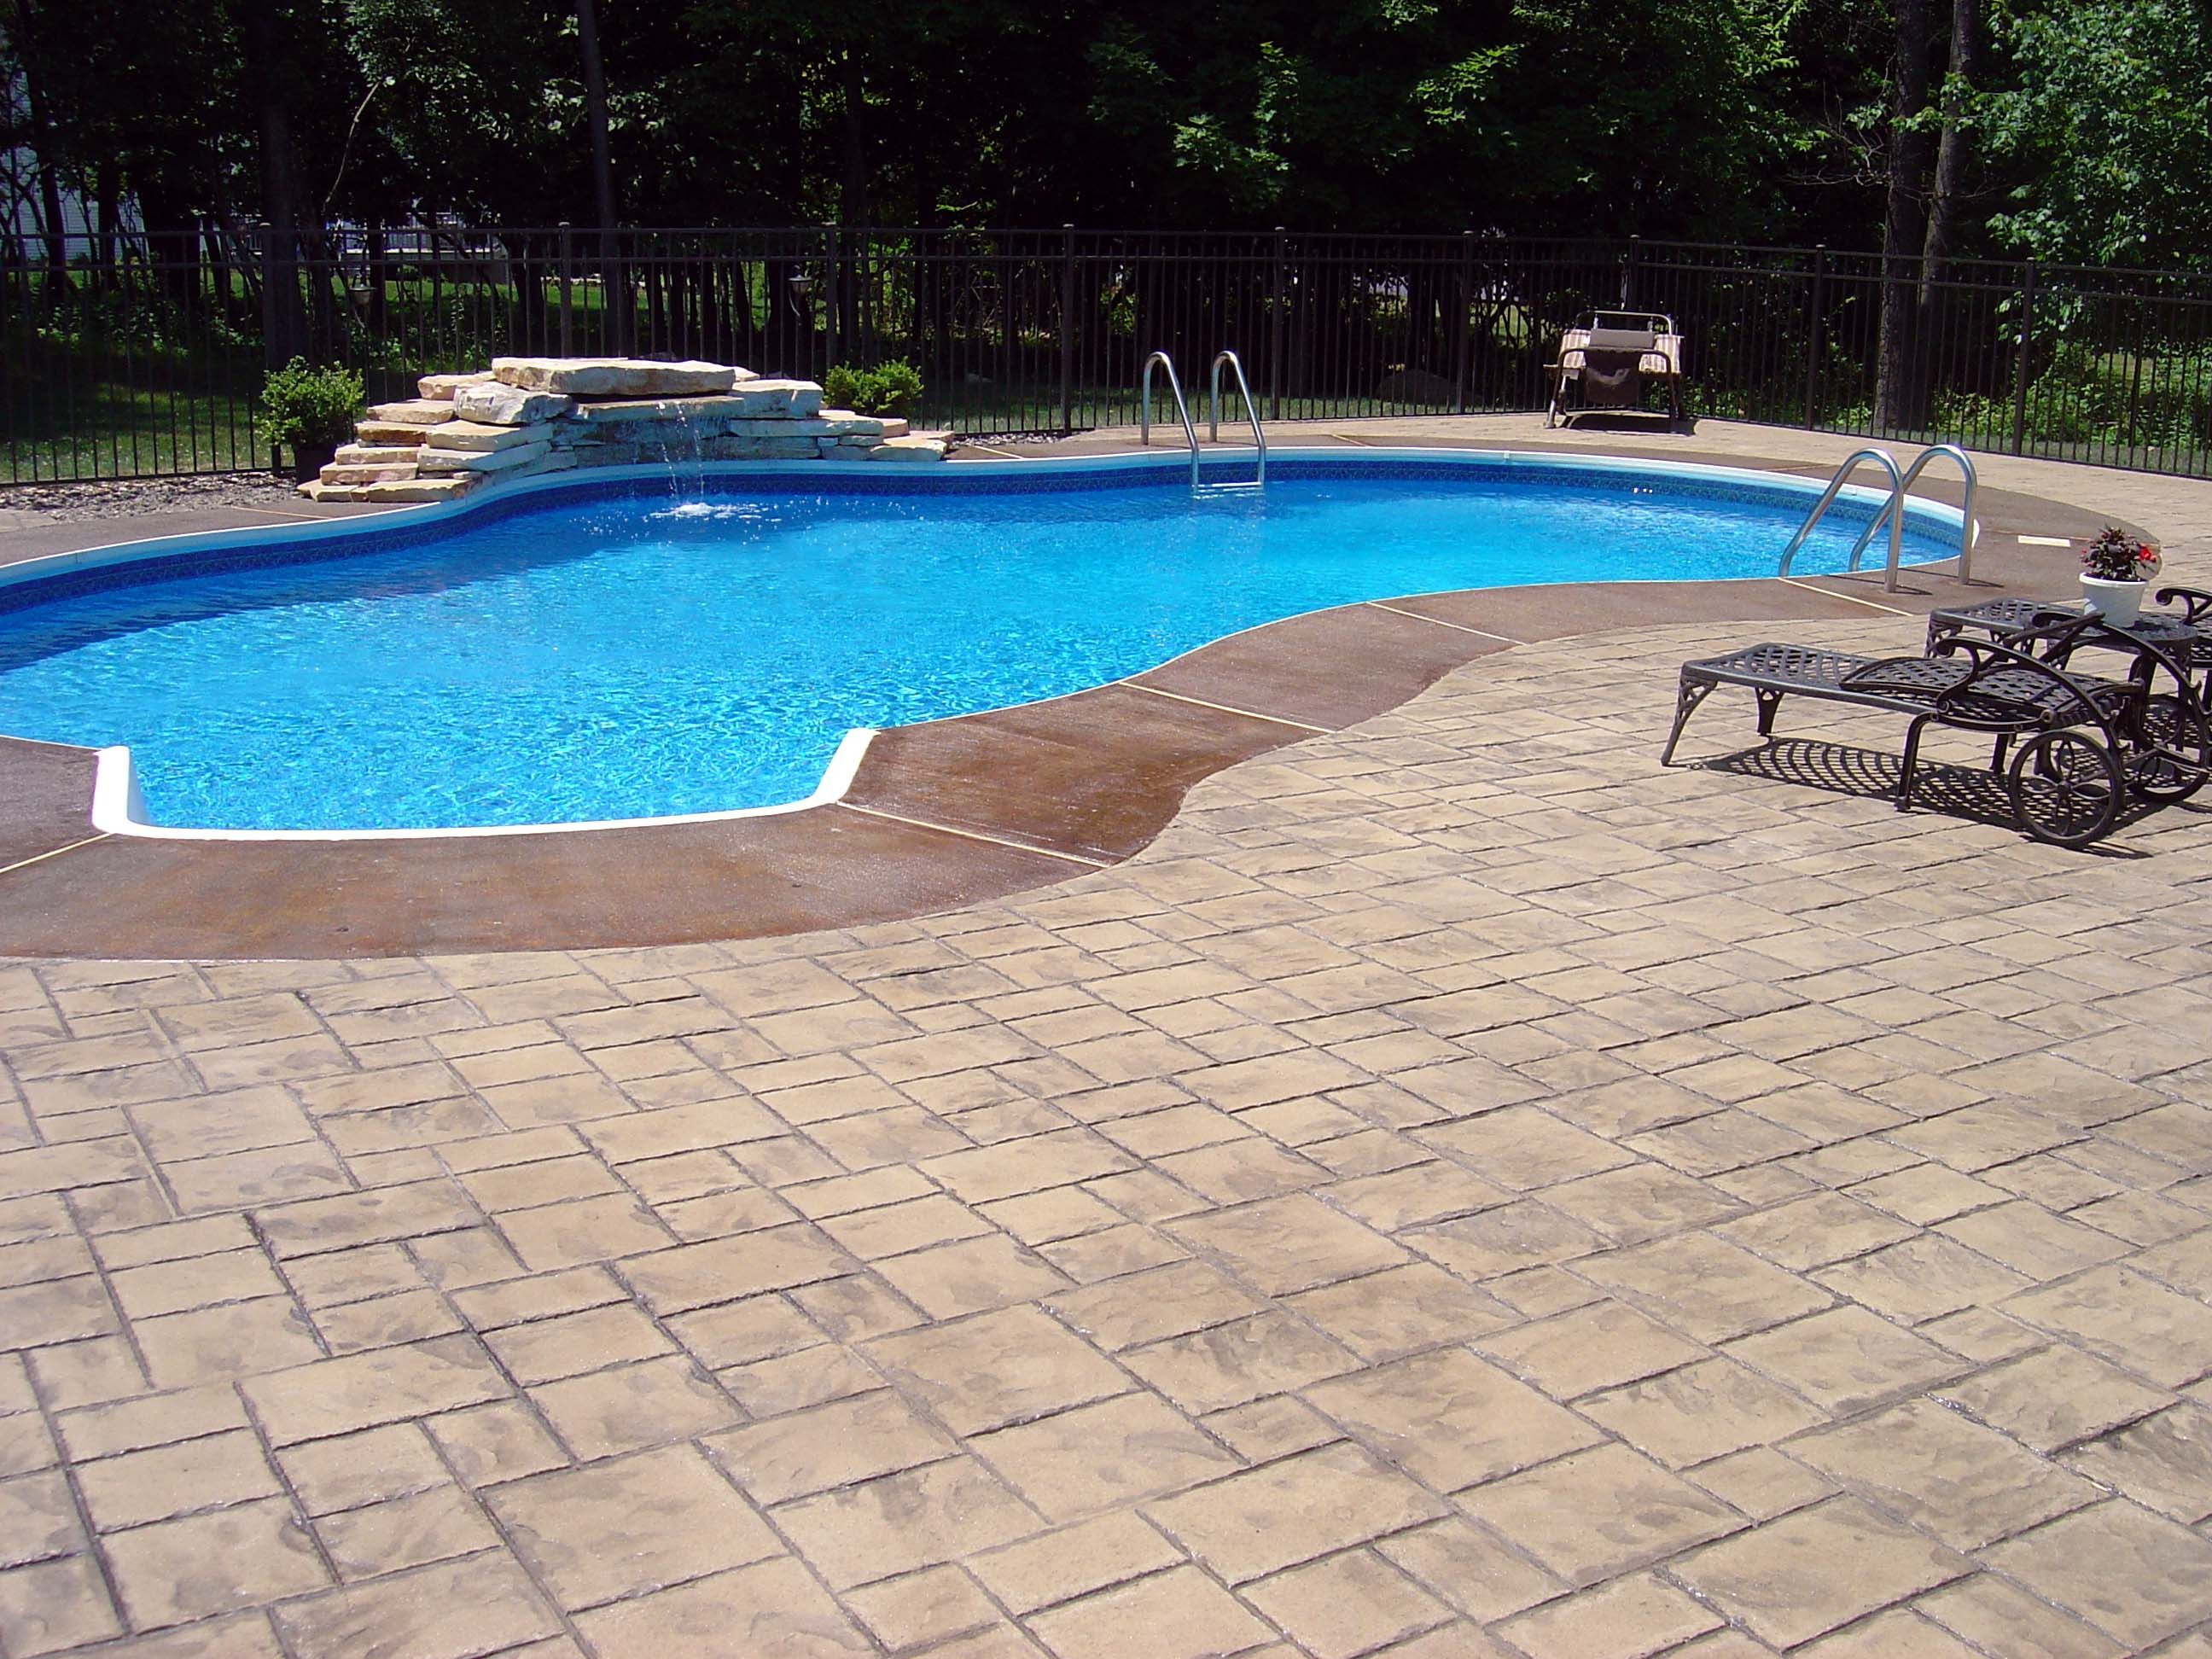 stamped concrete pool patio | pool - land | pinterest | concrete ... - Pool Patio Designs